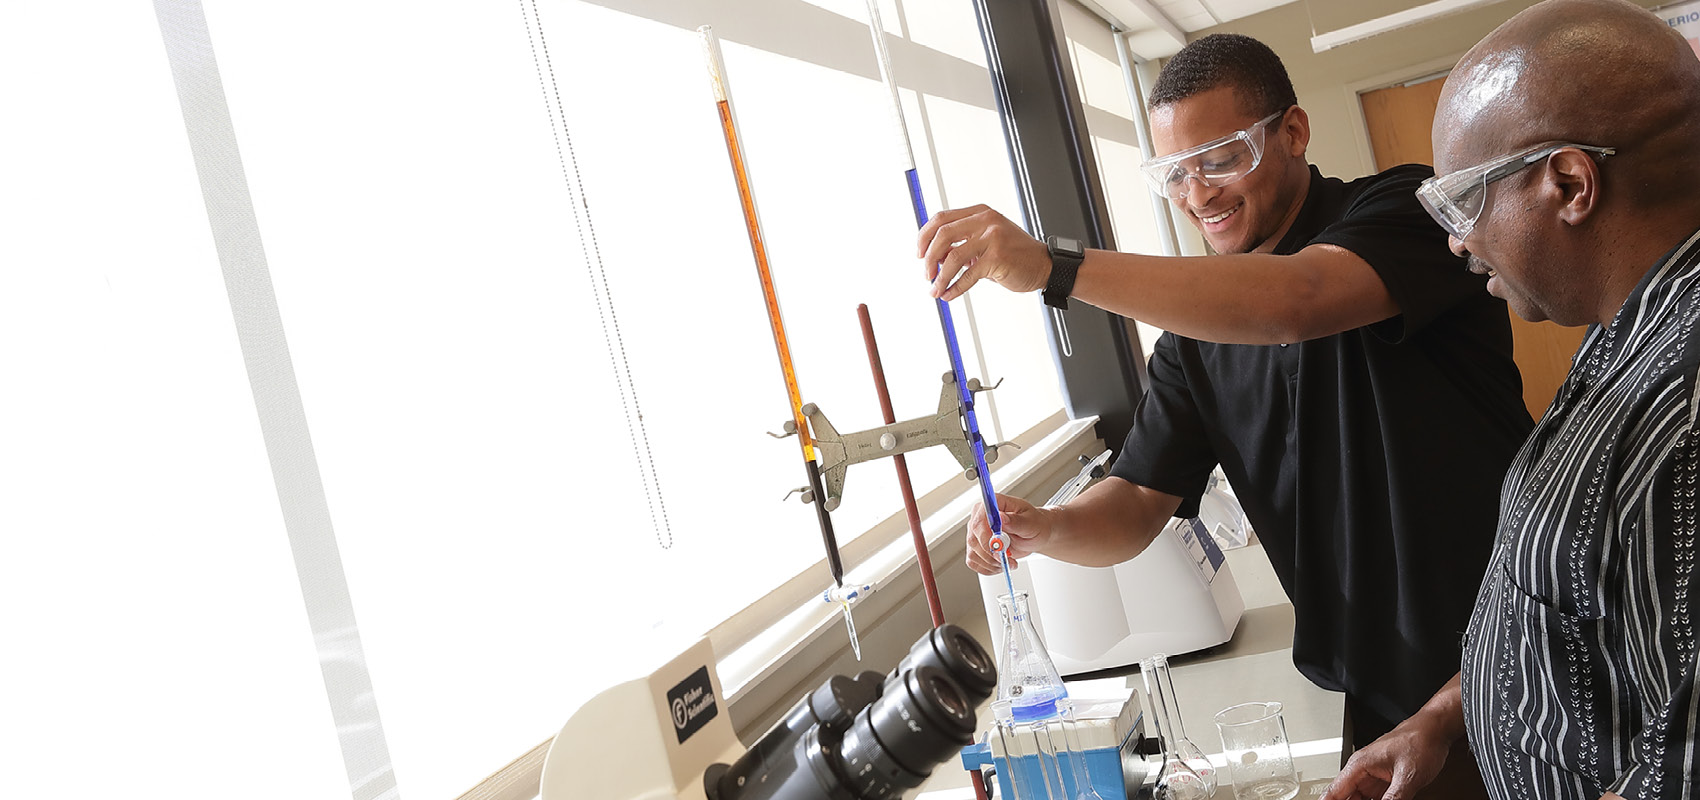 Dr. Mwangi helps USF student during Chemistry lab.